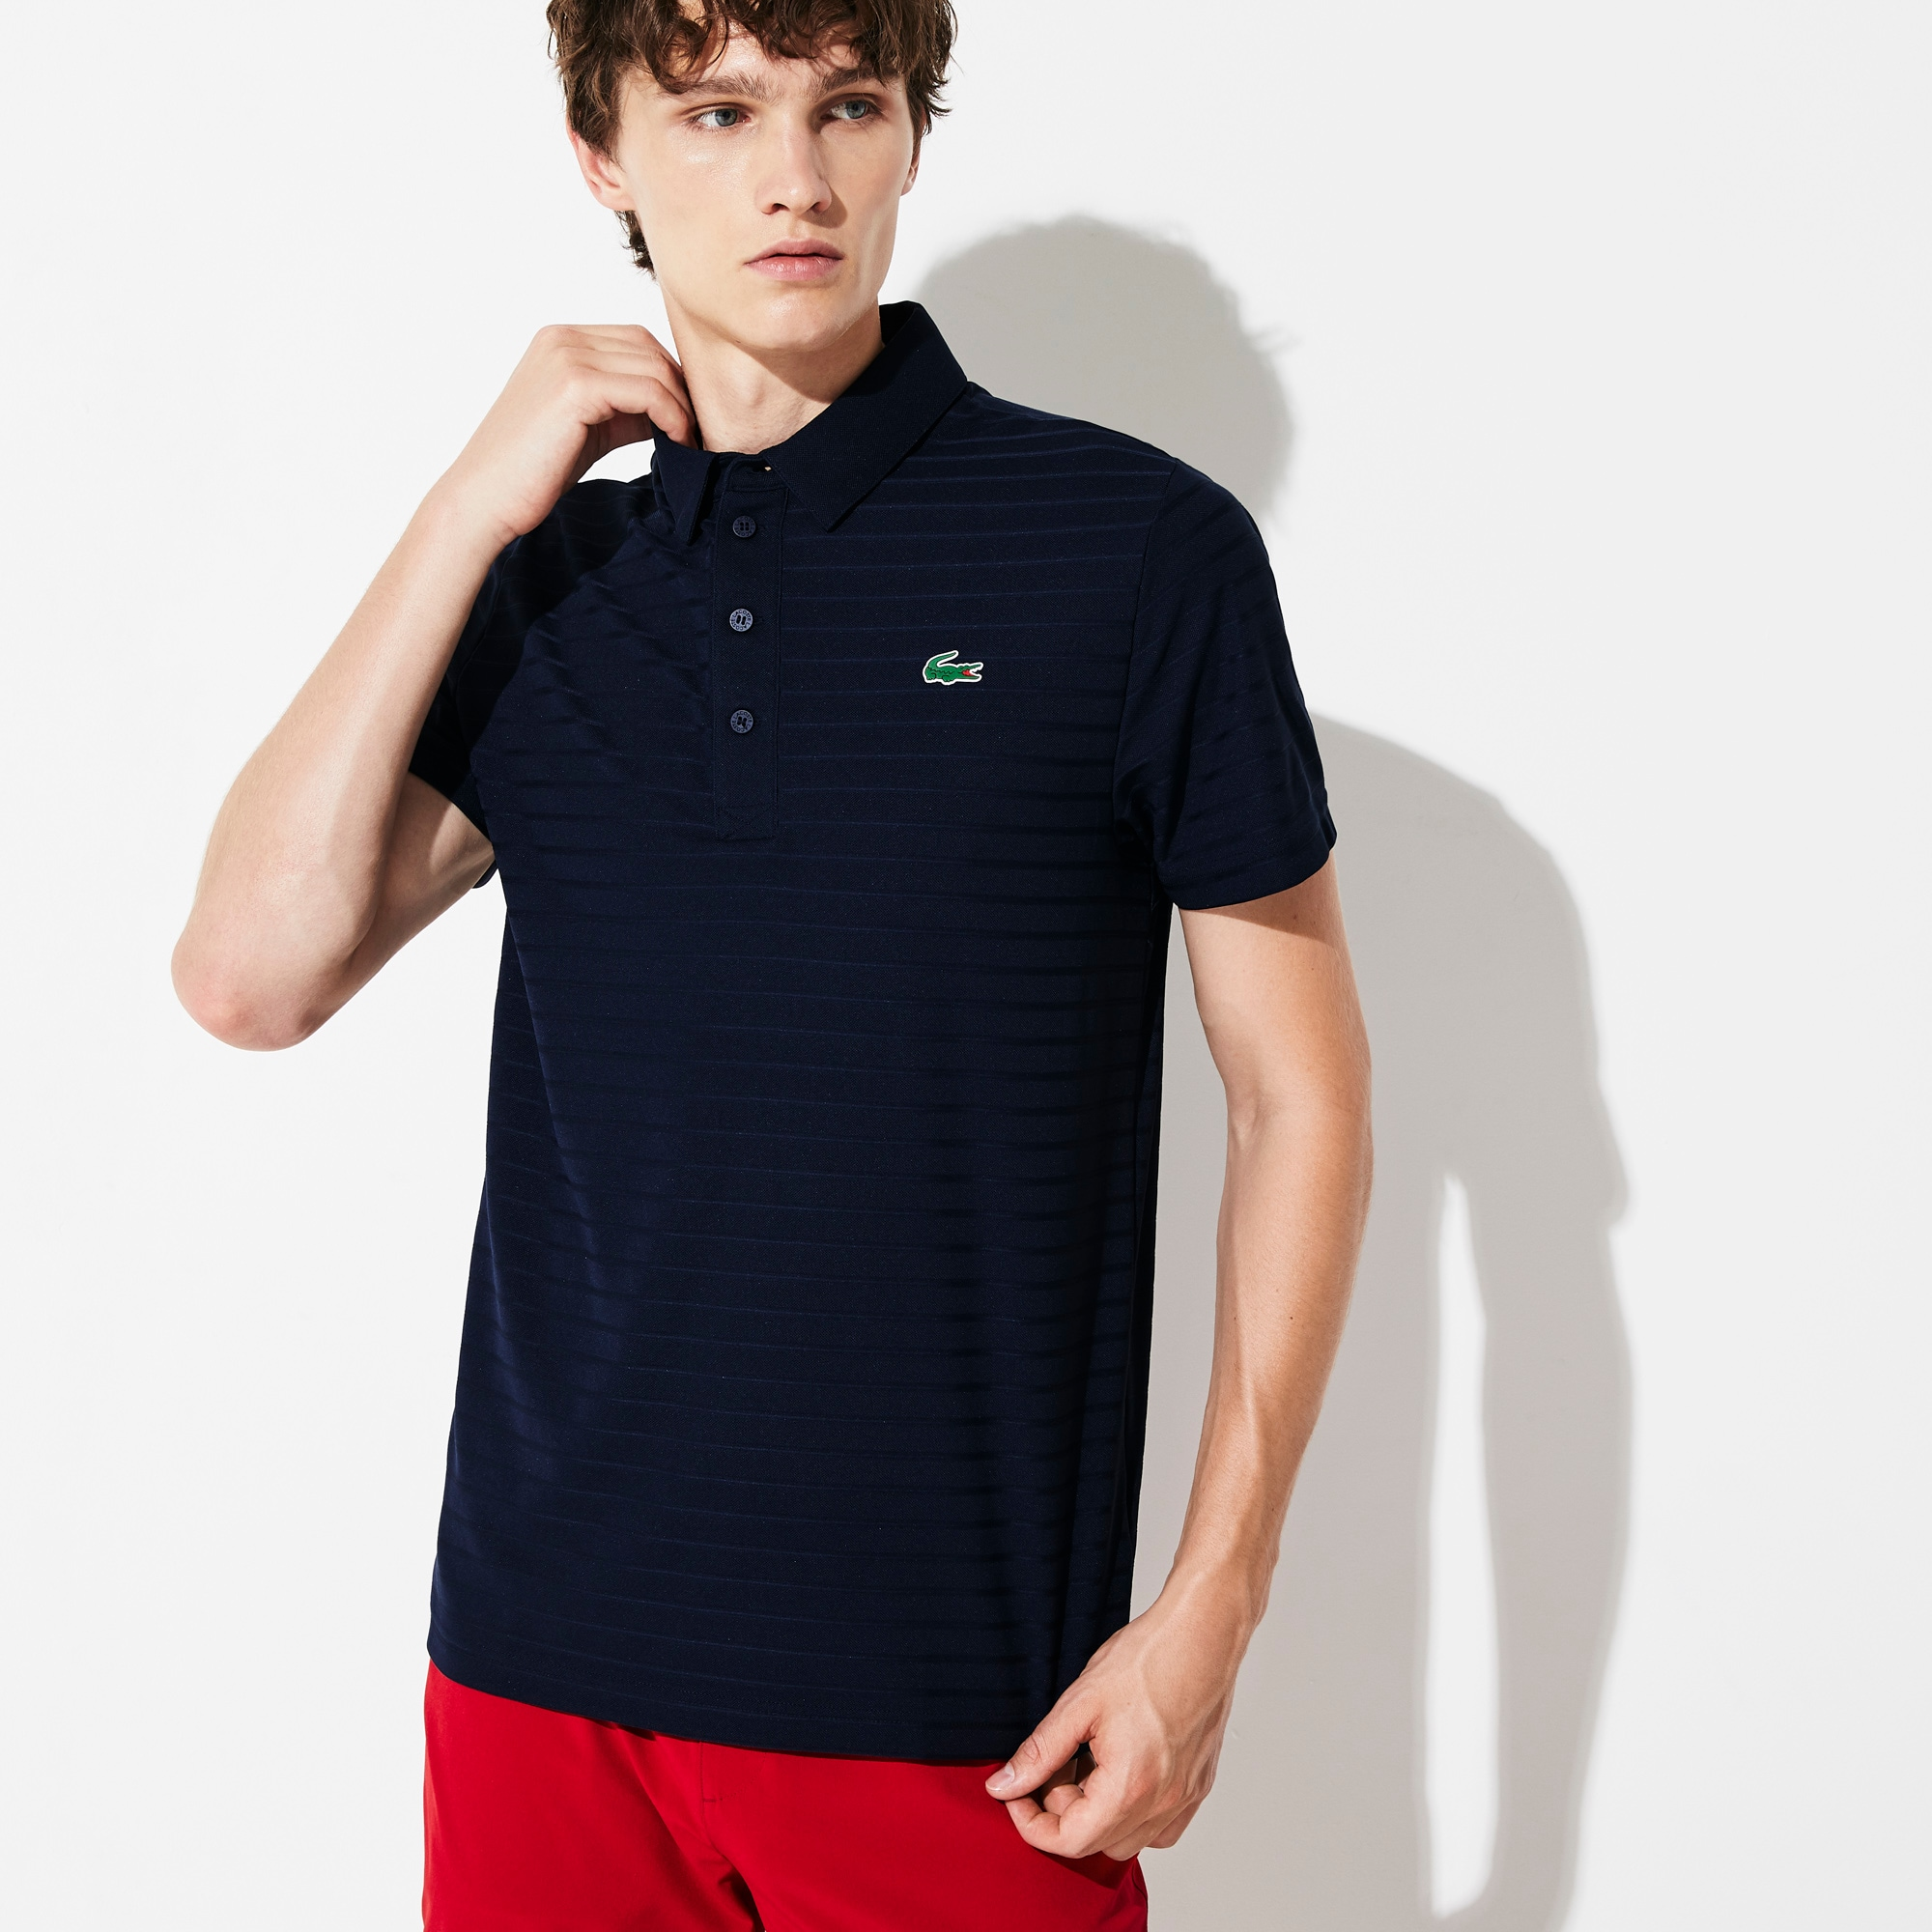 Polo Golf Lacoste SPORT in jersey jacquard tecnico a righe